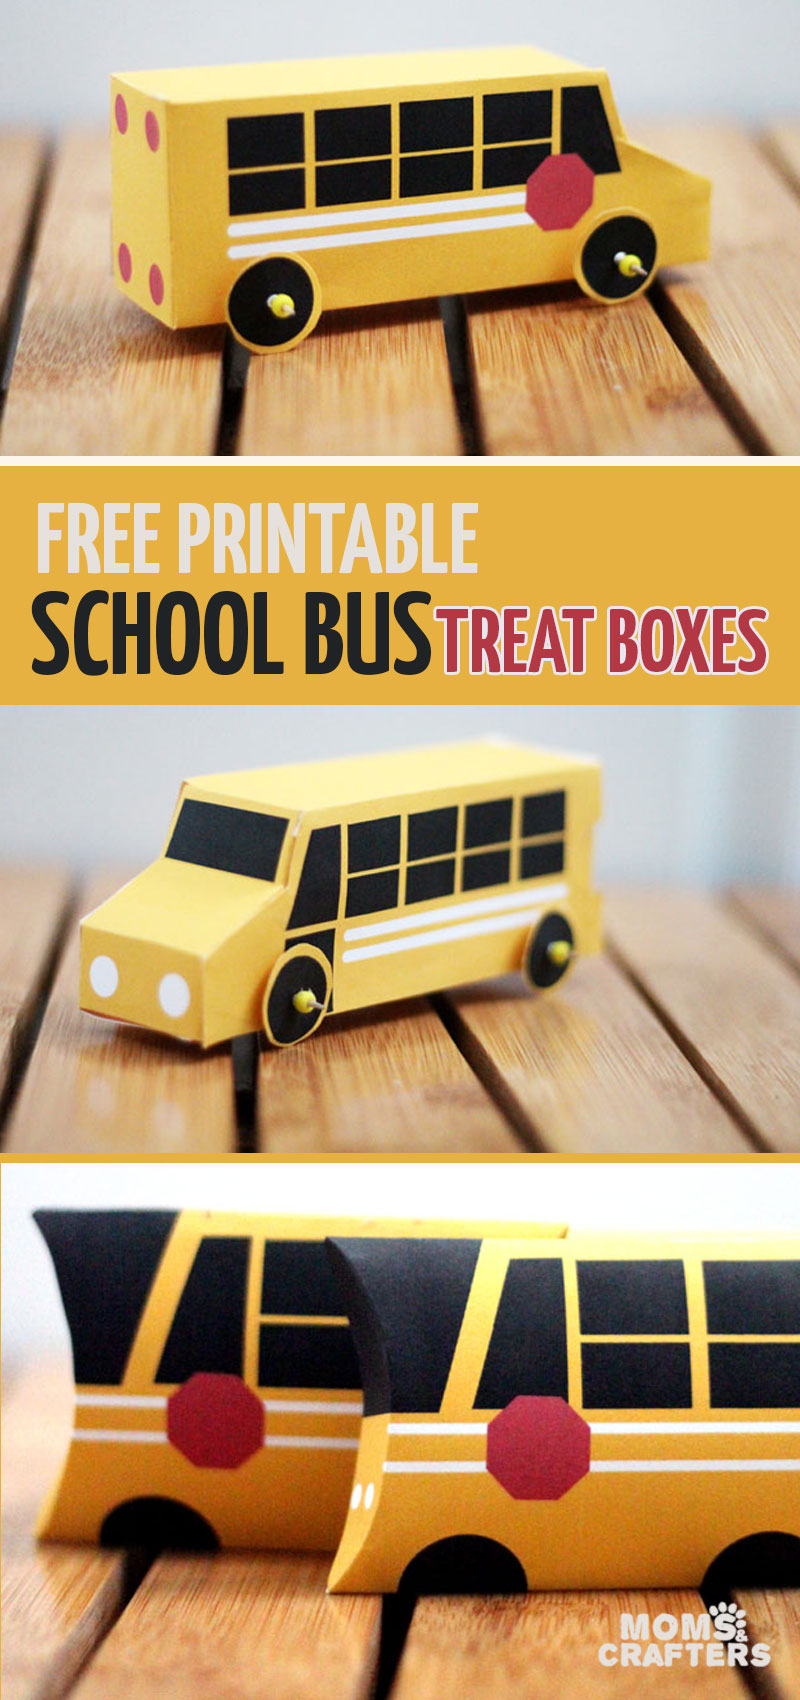 Click for the coolest free printable school bus pillow treat boxes and paper toys ever! These are wonderful for back to school lunch boxes or for end of year teacher gifts! #papercrafts #treatboxes #freeprintable